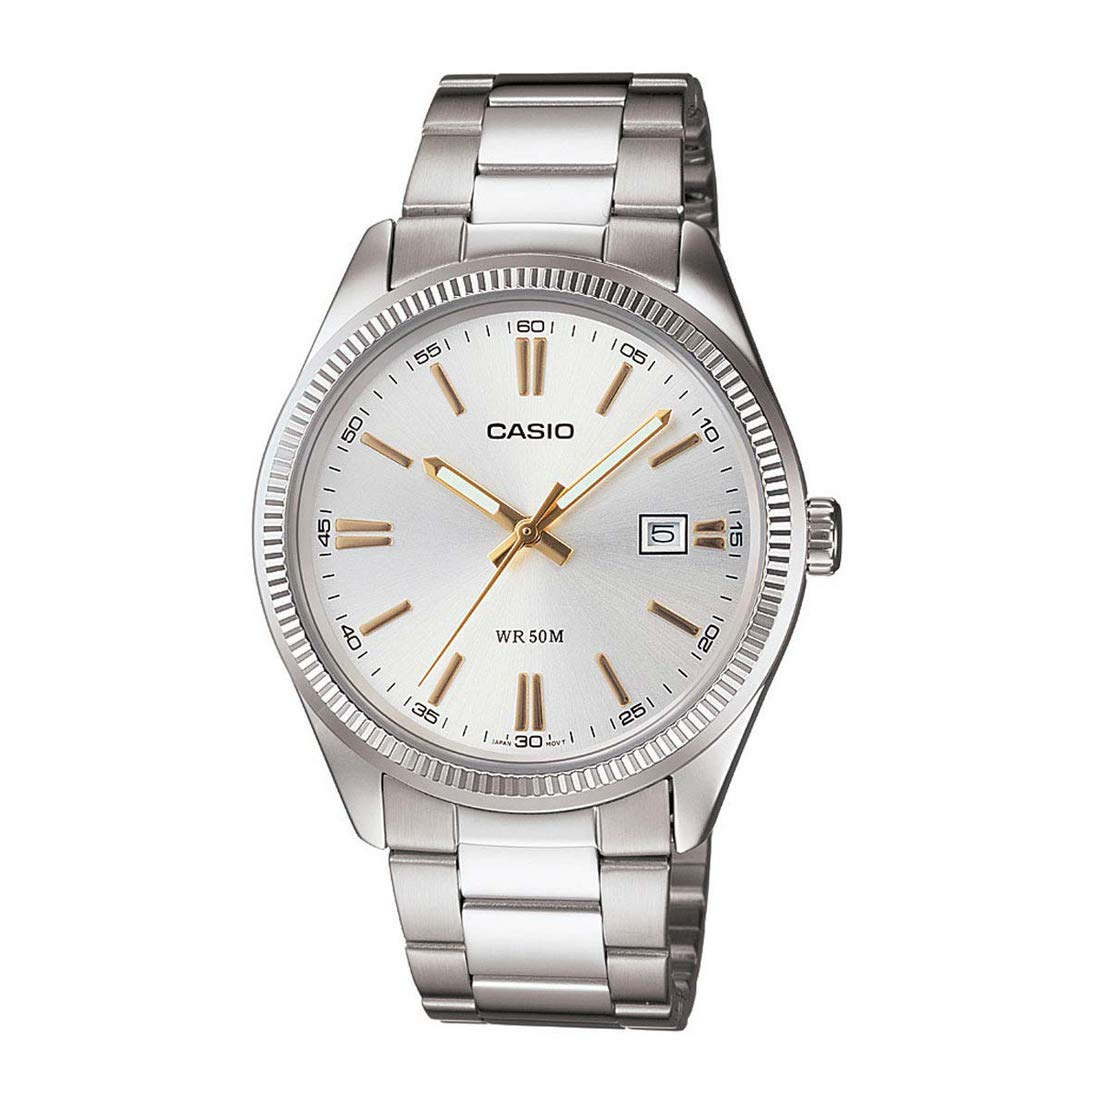 Best Watches under 2500 Rupees for Men in India